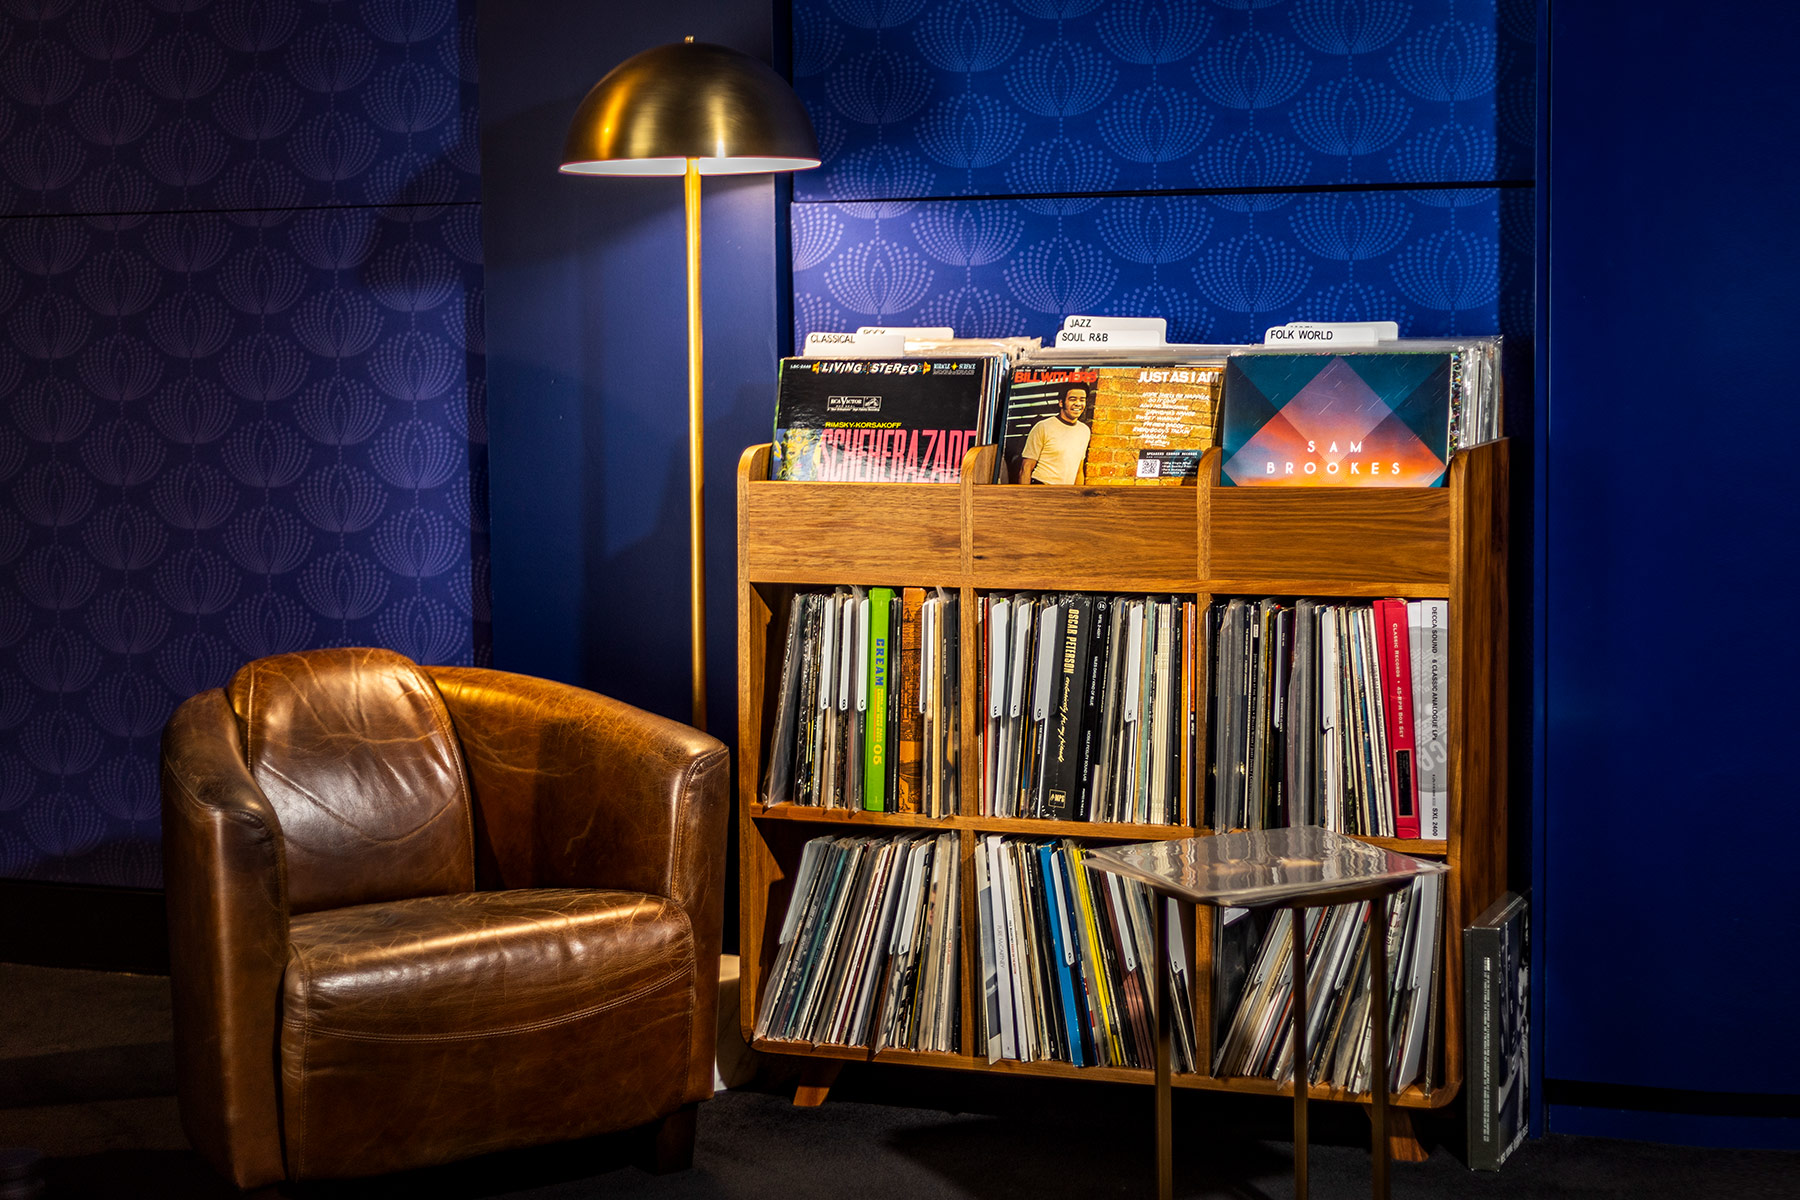 Nirvana Sound showroom - chair and LPs